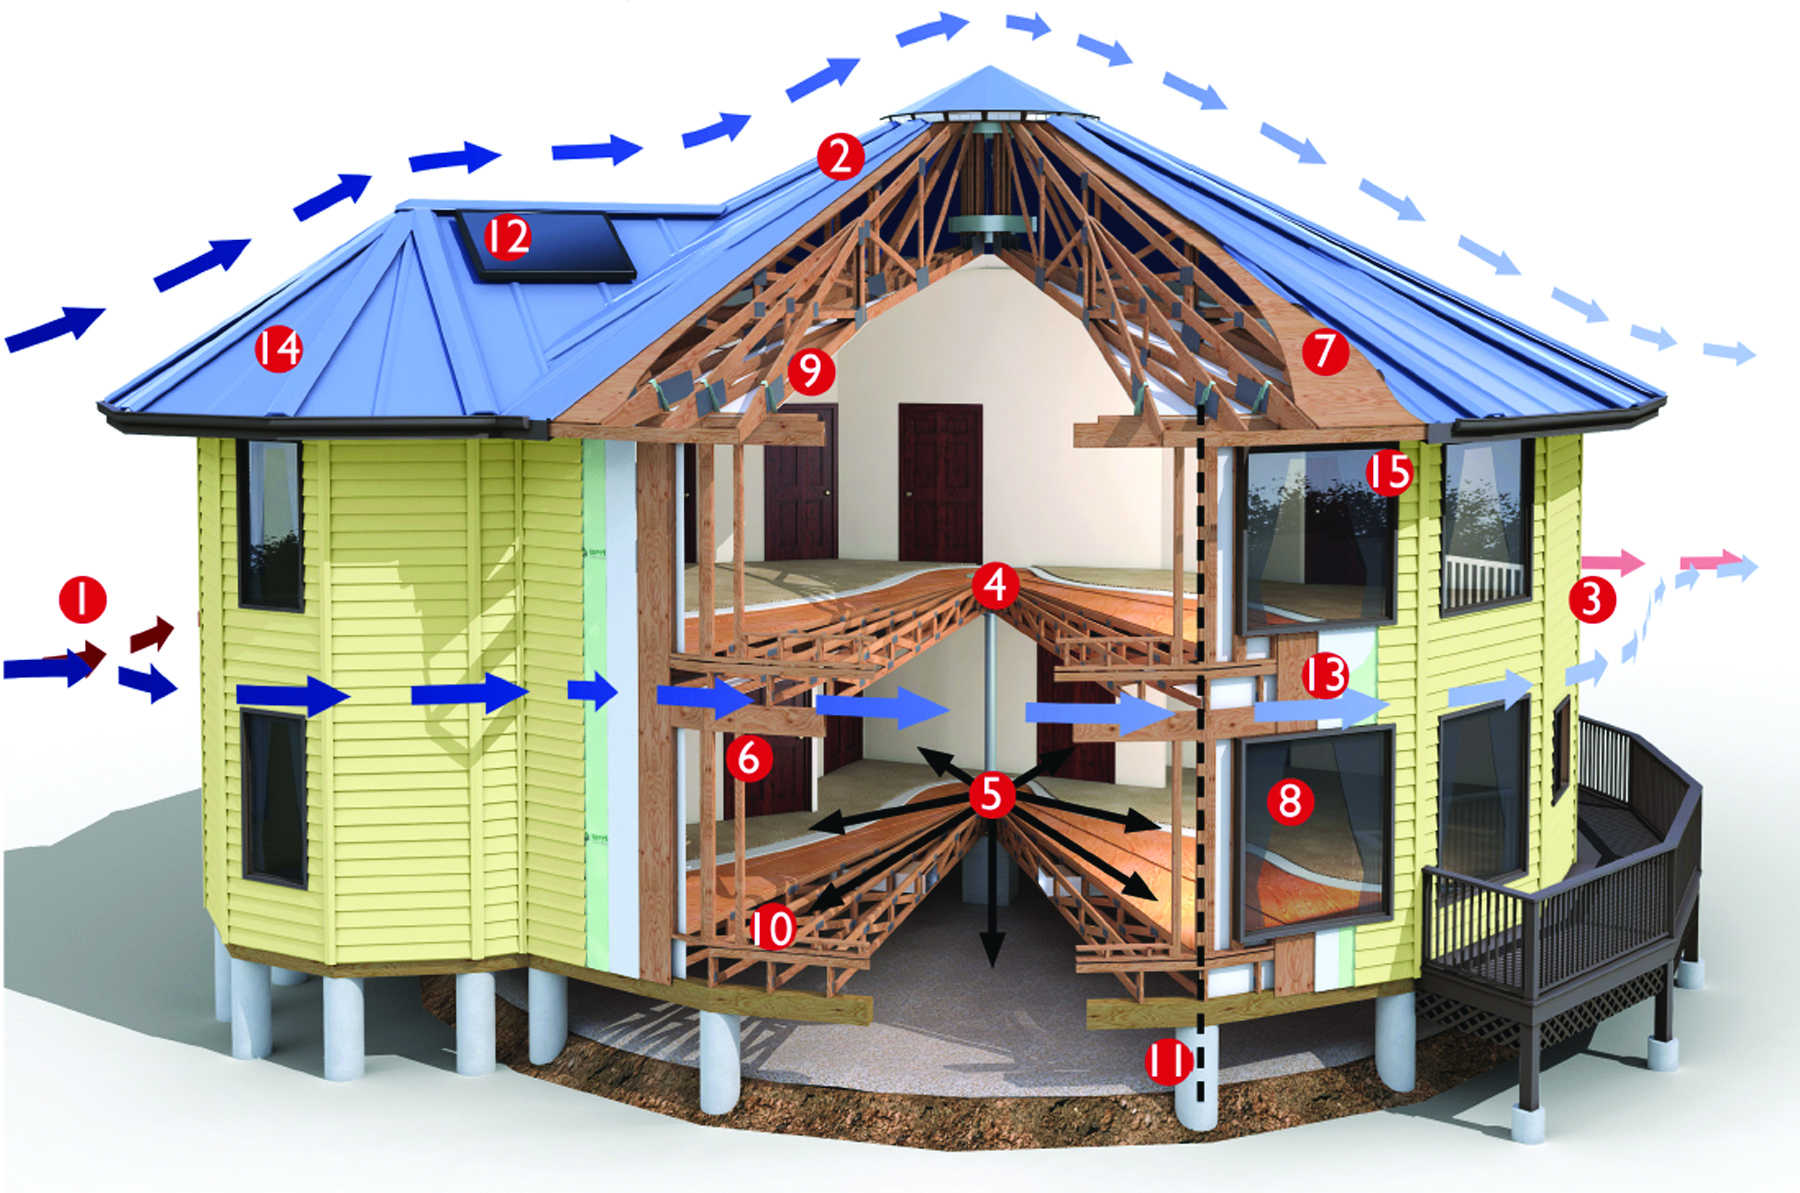 How to build a house to withstand a   strong hurricane